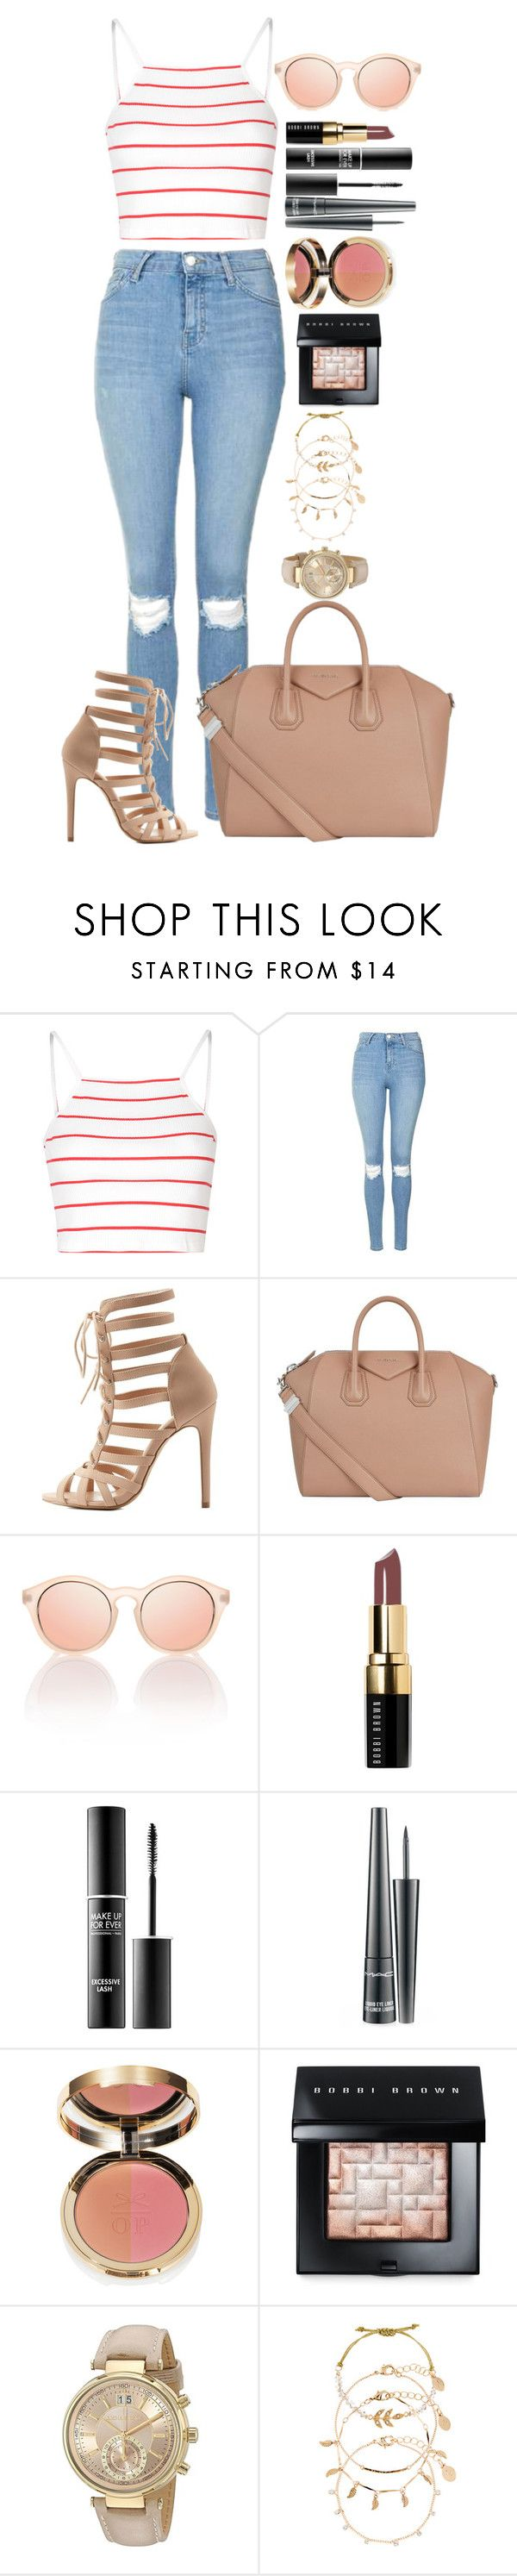 """""""Untitled #1504"""" by fabianarveloc on Polyvore featuring Glamorous, Topshop, Charlotte Russe, Givenchy, Bobbi Brown Cosmetics, MAKE UP FOR EVER, MAC Cosmetics, Ciaté, Michael Kors and Accessorize"""